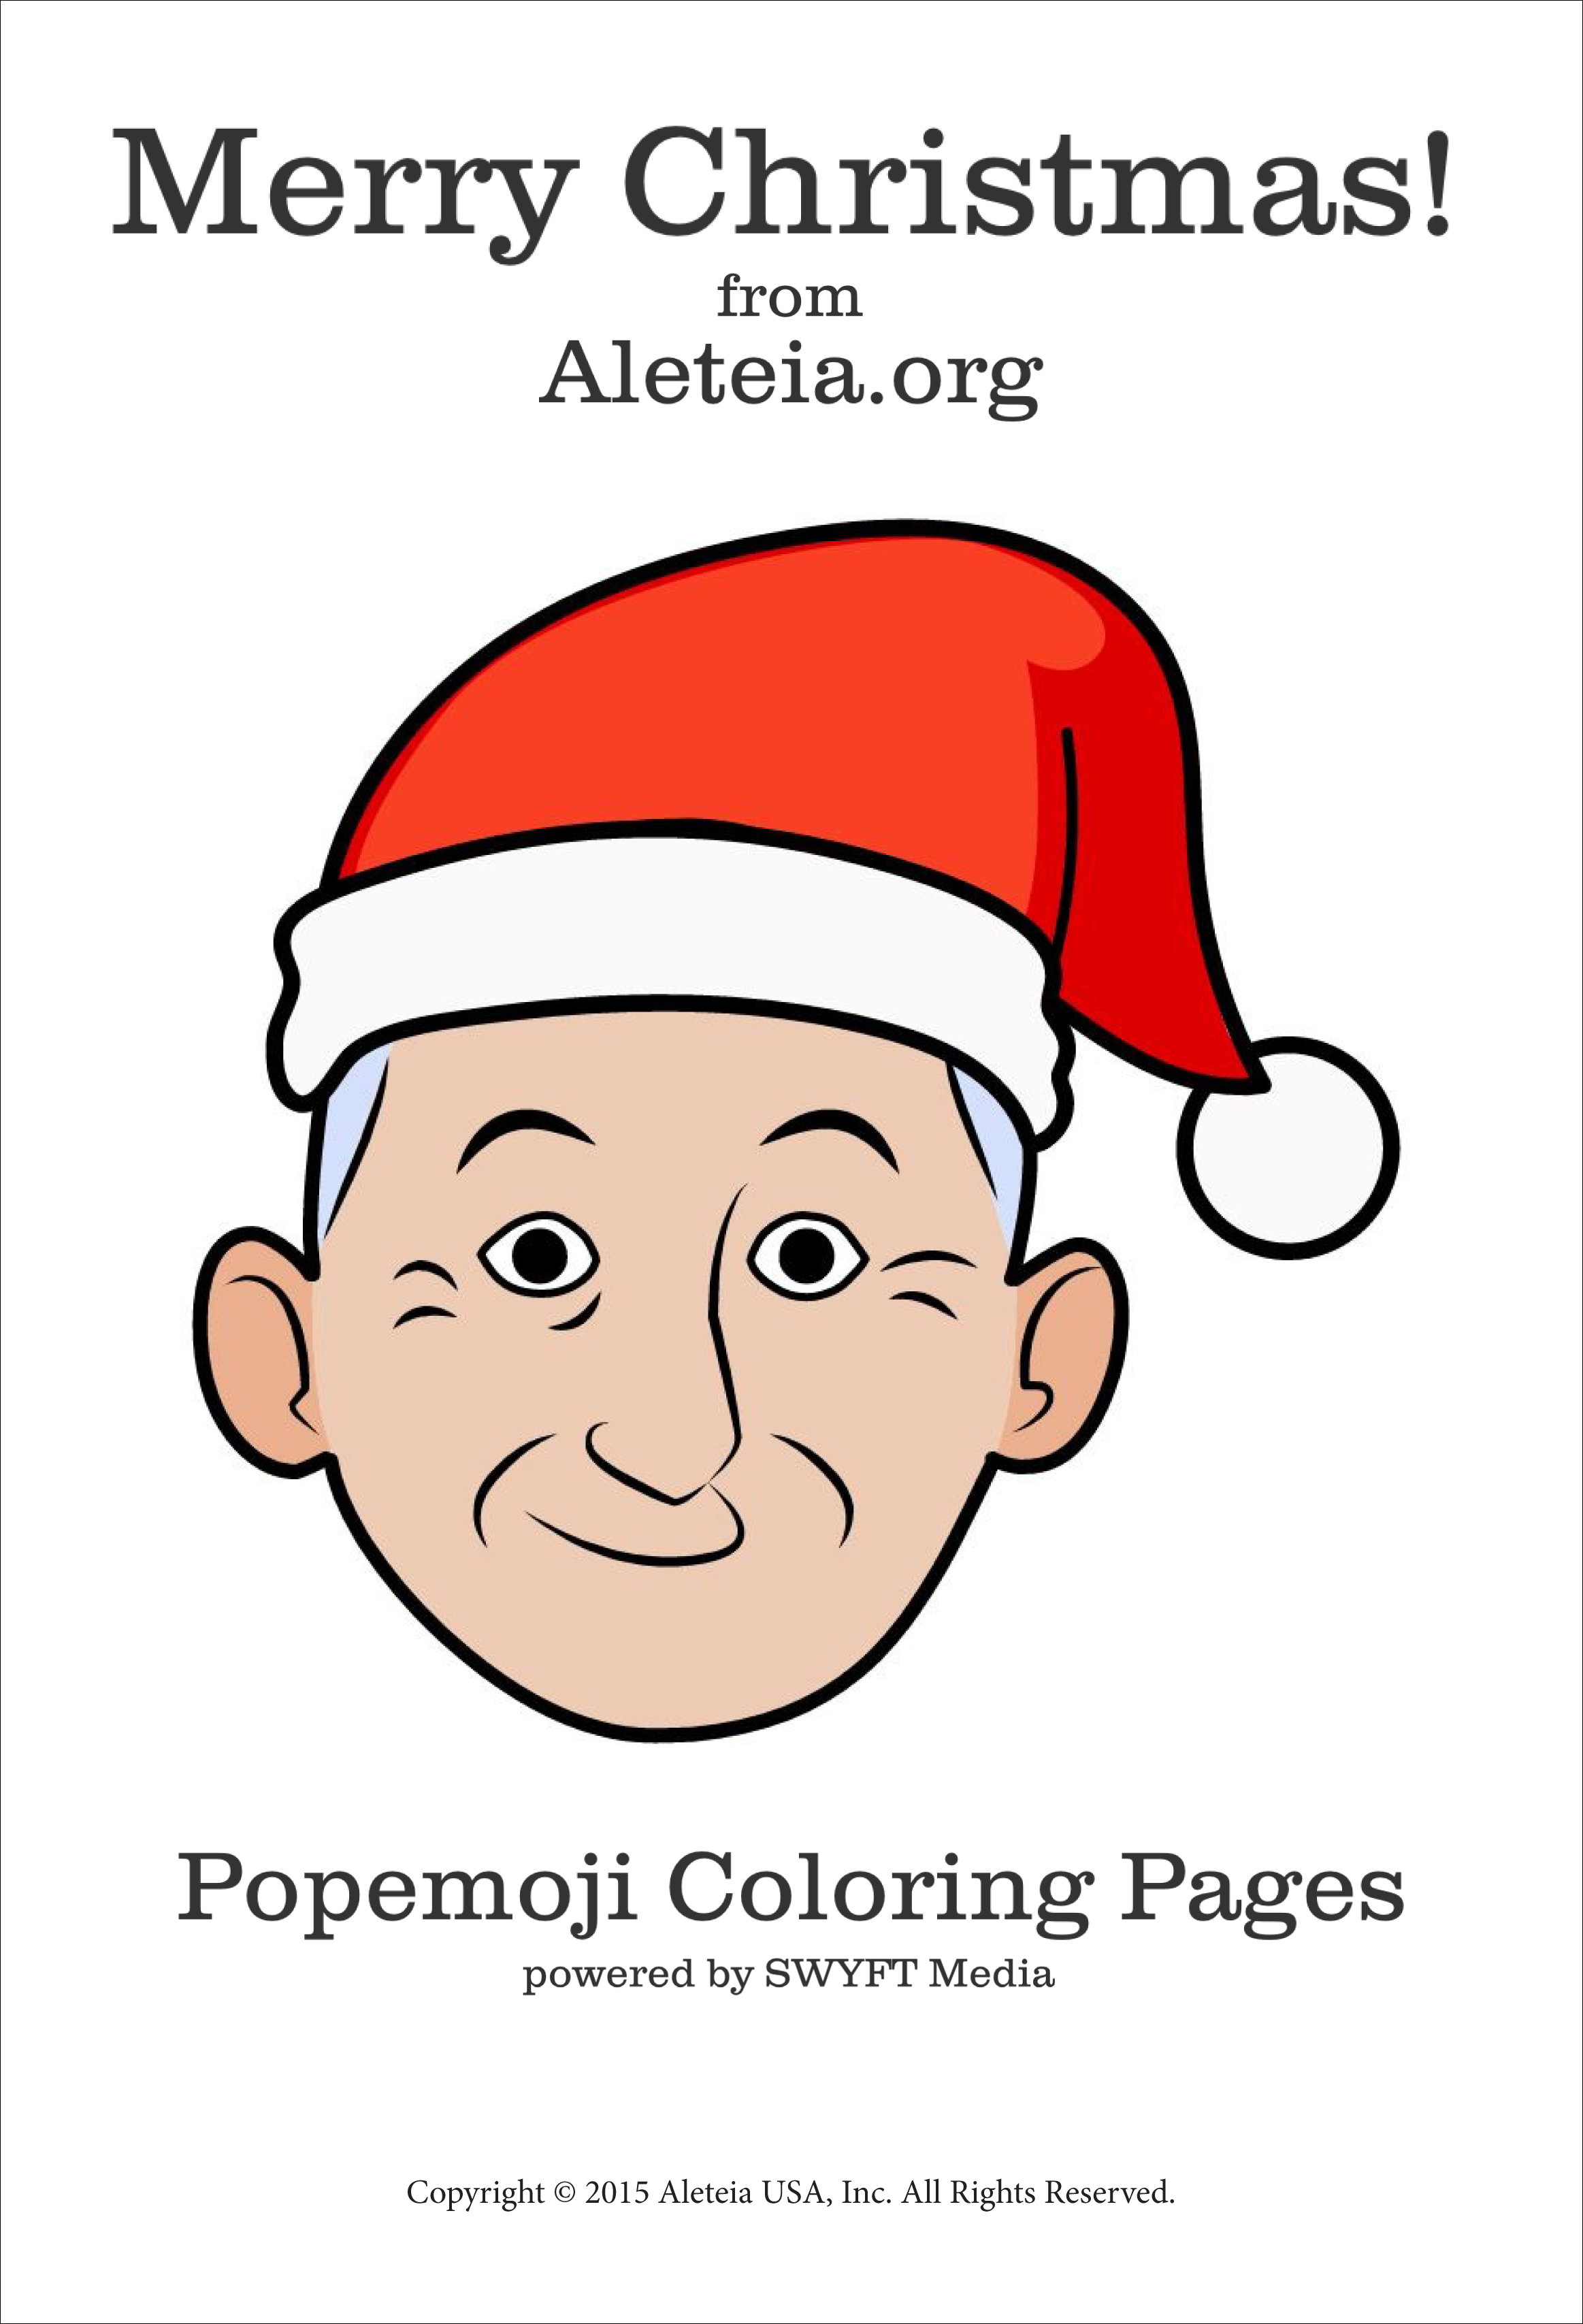 Popemoji_Christmas_Coloring